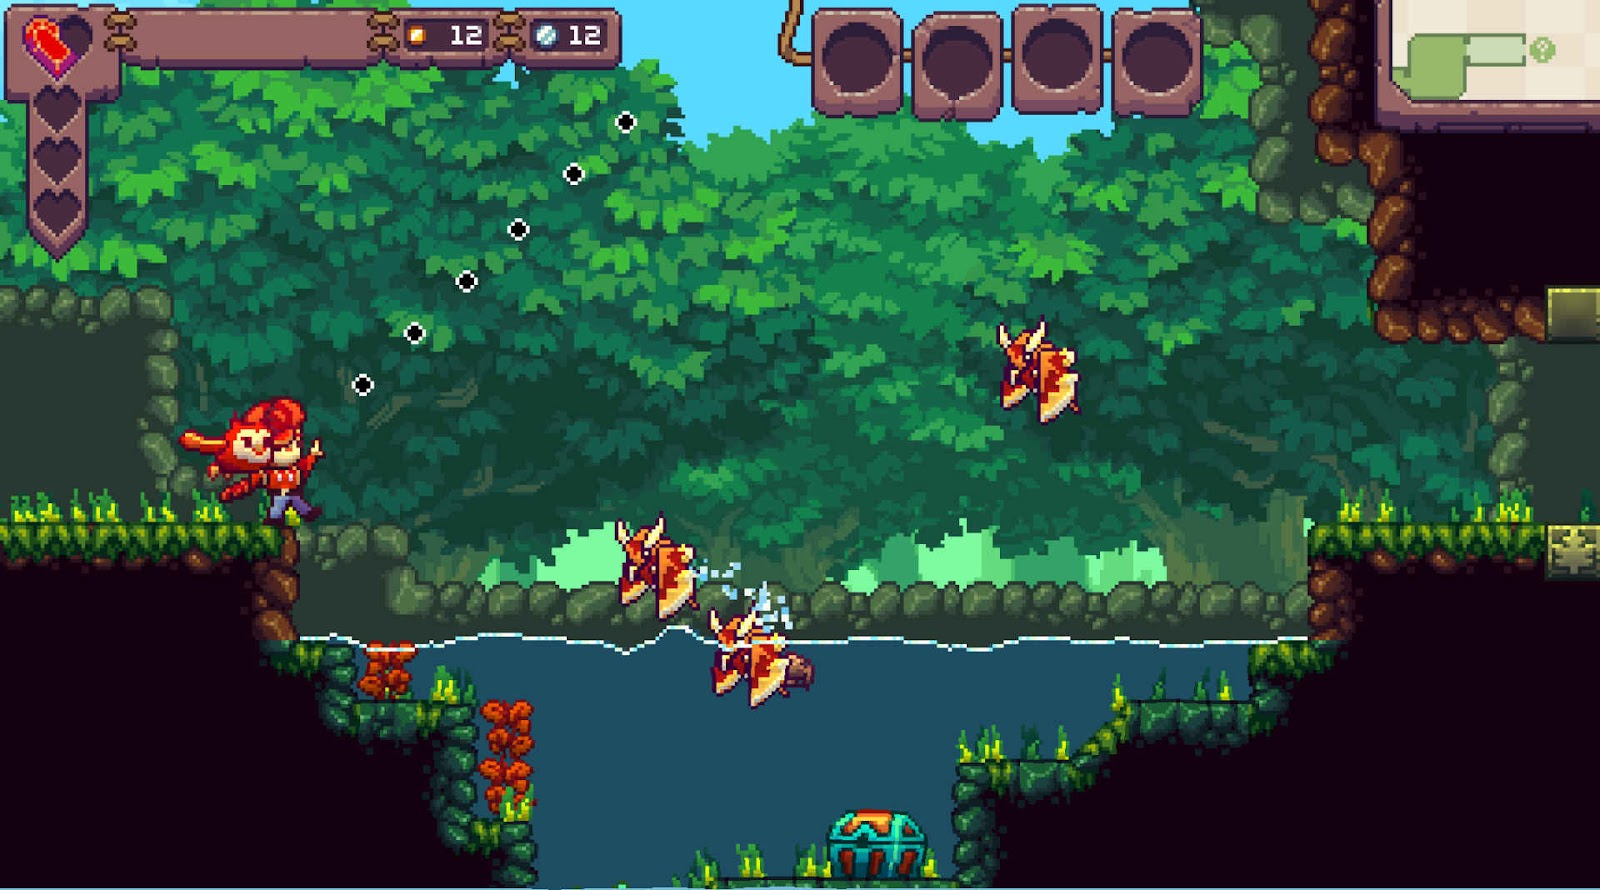 The character aiming to throw his owl against an enemy with the forest as background.